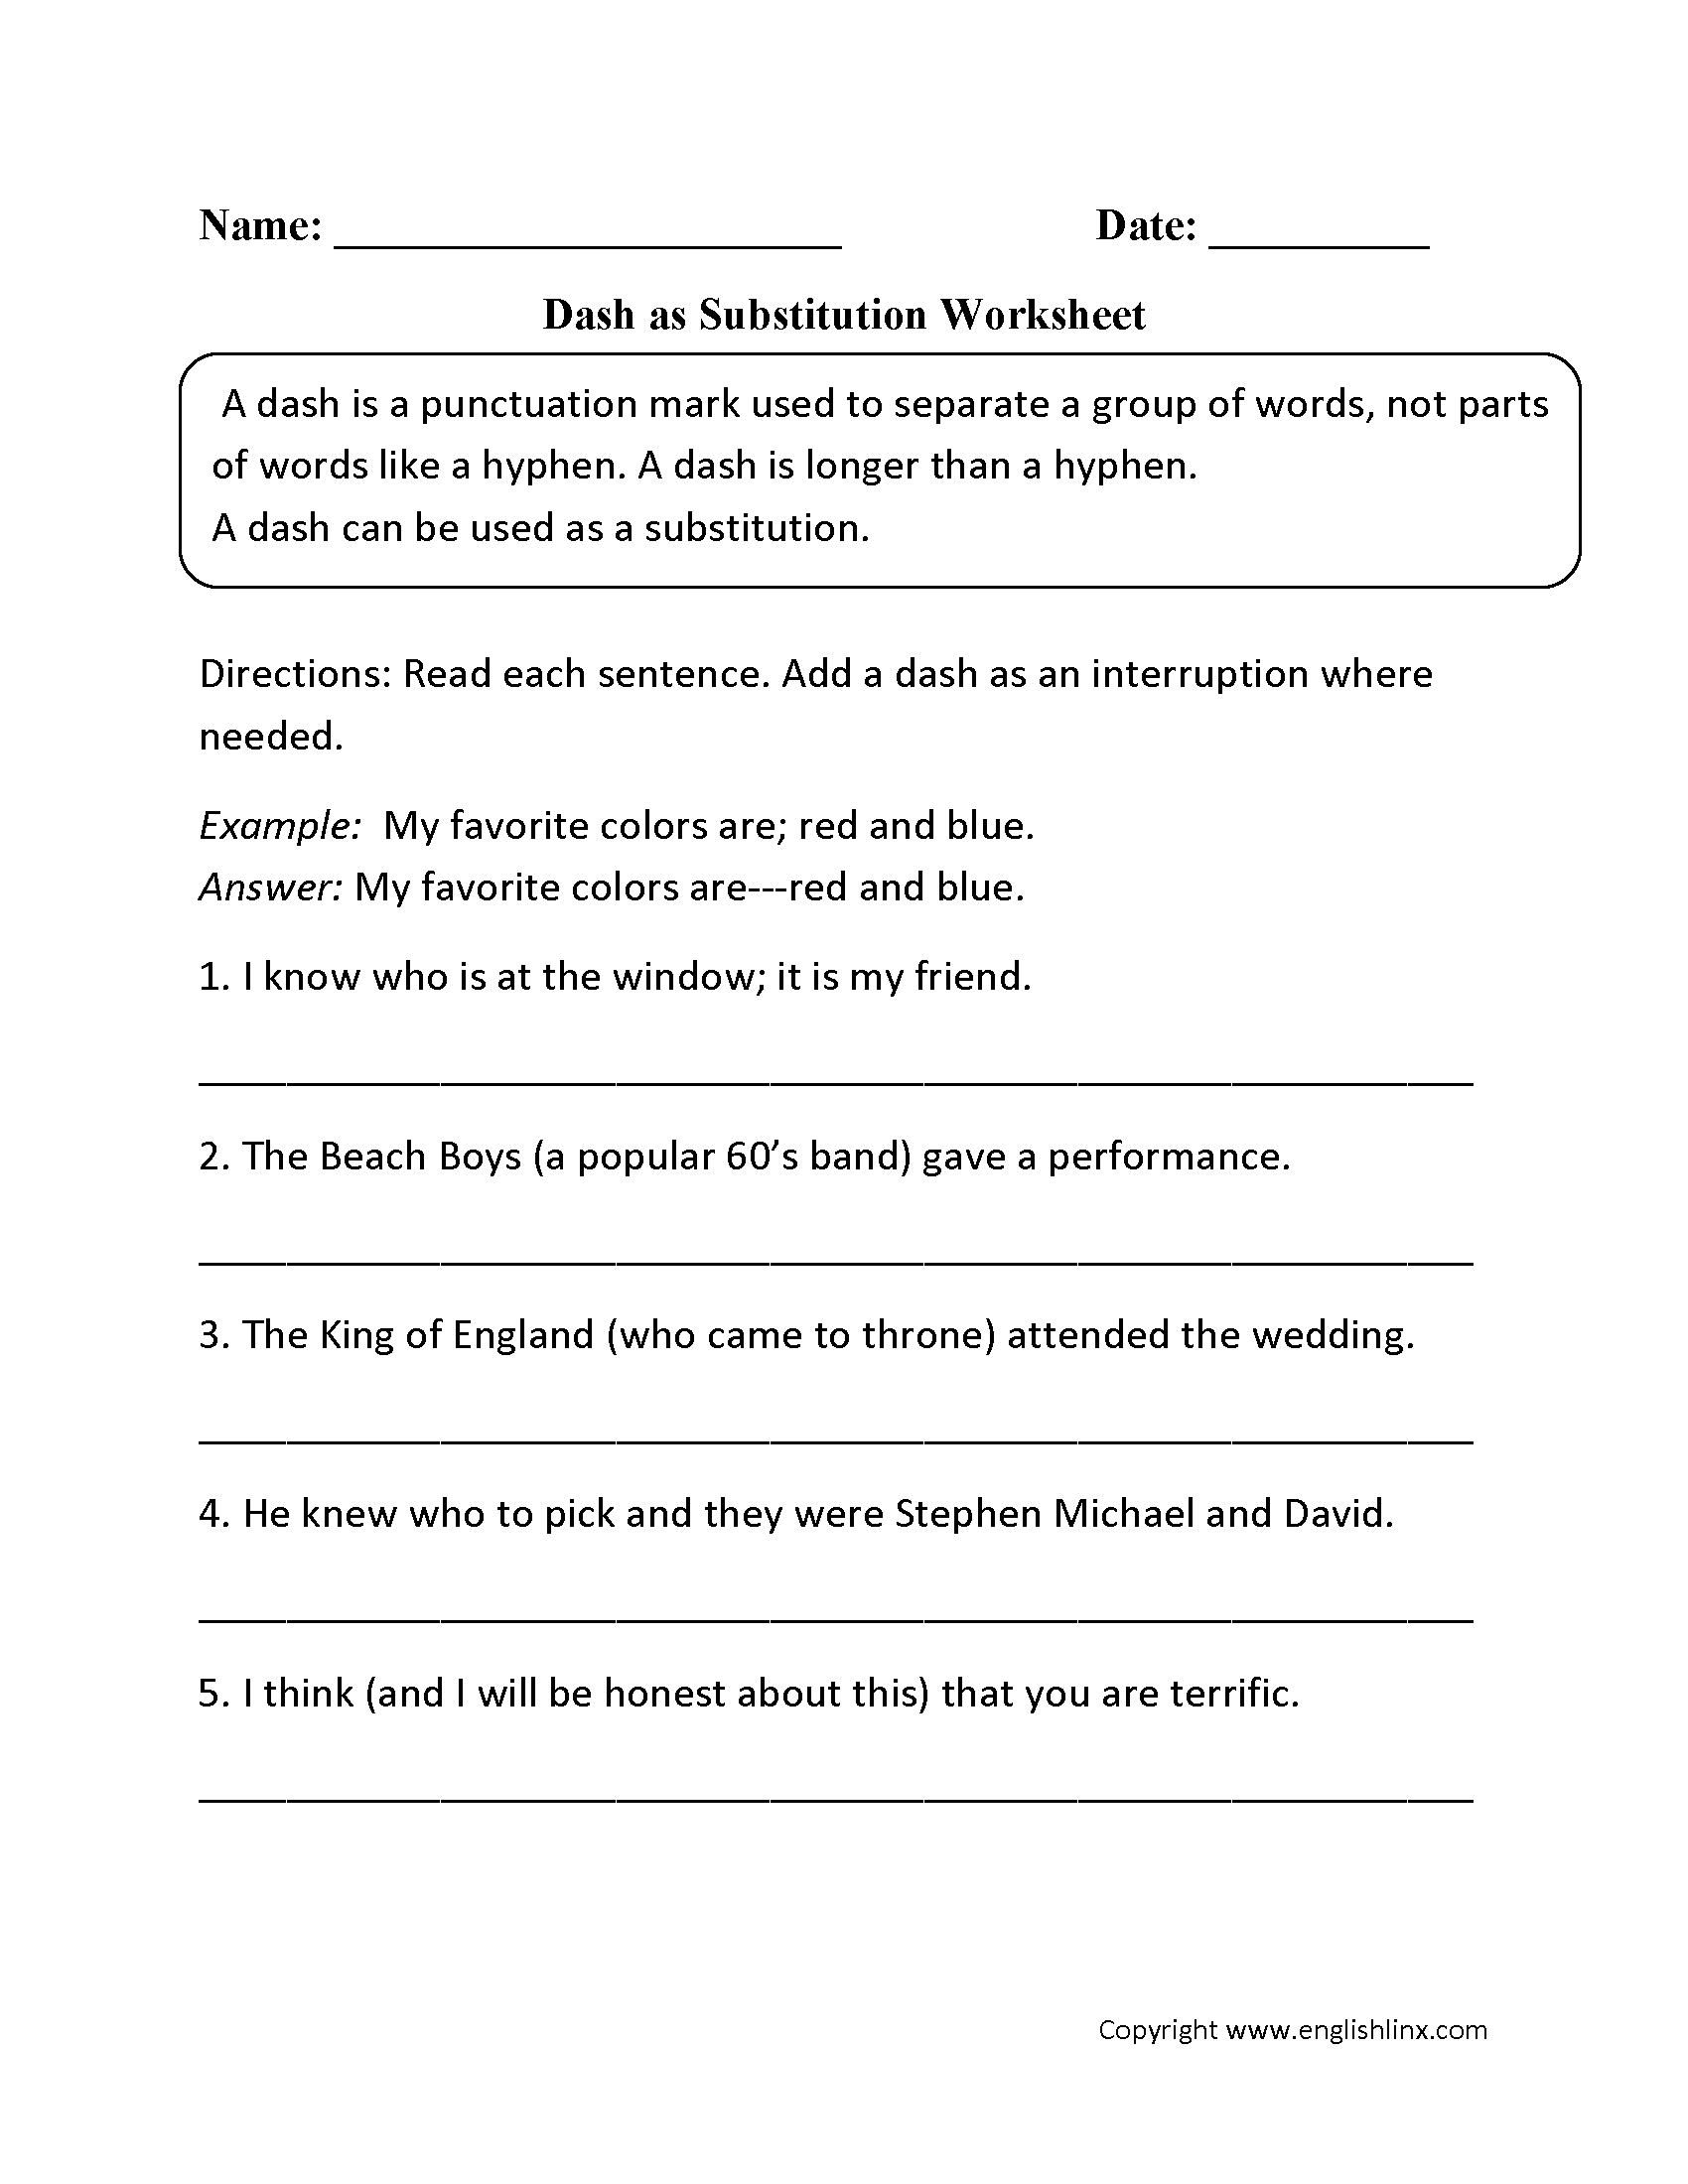 Printables Punctuation Worksheets High School punctuation worksheets dash worksheet